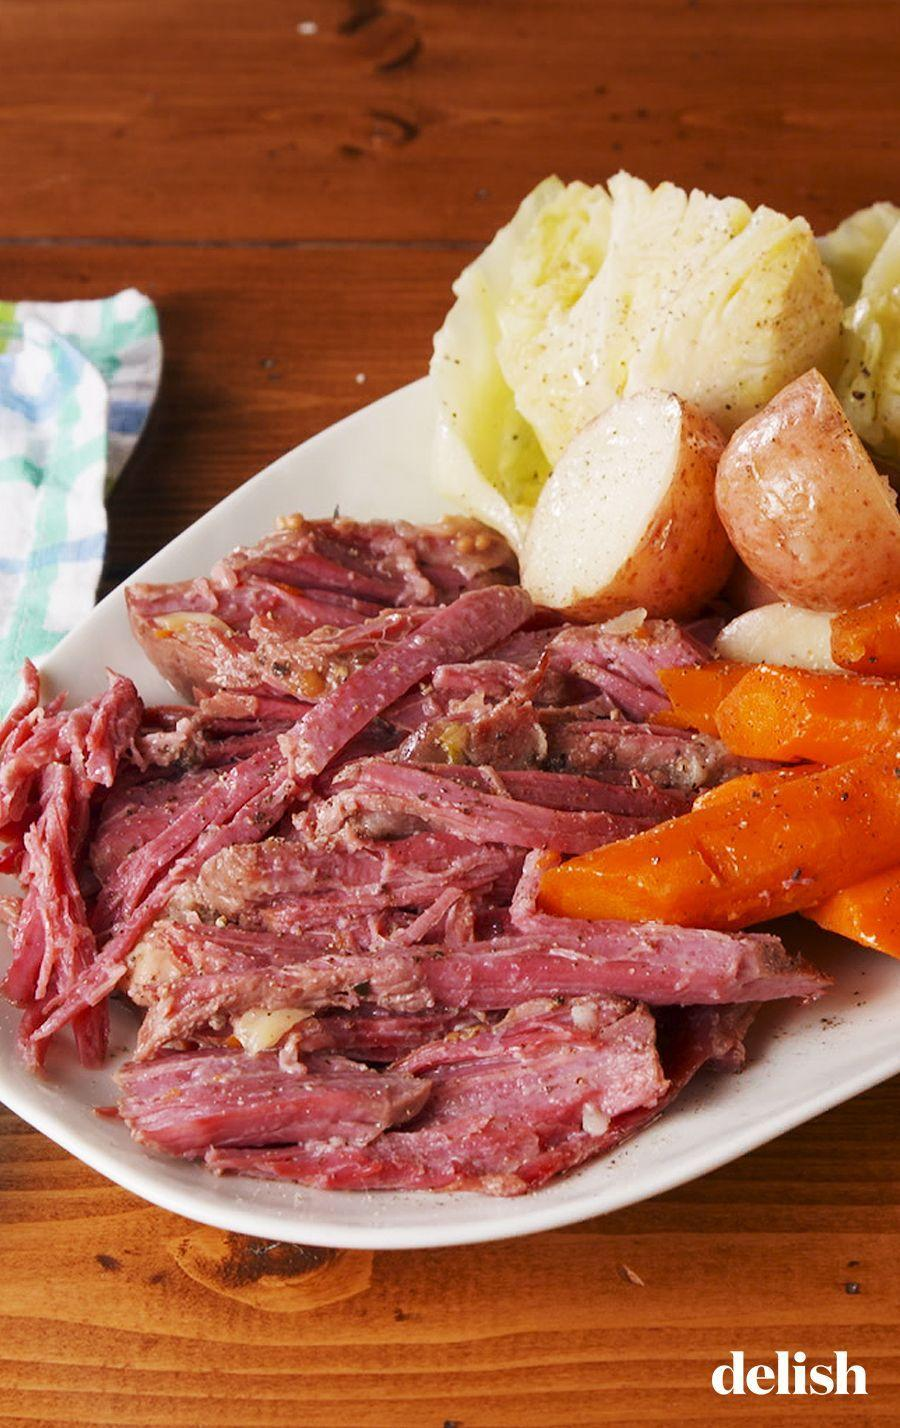 """<p>A St. Patty's Day must.</p><p>Get the recipe from <a href=""""https://www.delish.com/cooking/recipe-ideas/a26243431/instant-pot-corned-beef-recipe/"""" rel=""""nofollow noopener"""" target=""""_blank"""" data-ylk=""""slk:Delish"""" class=""""link rapid-noclick-resp"""">Delish</a>.</p>"""